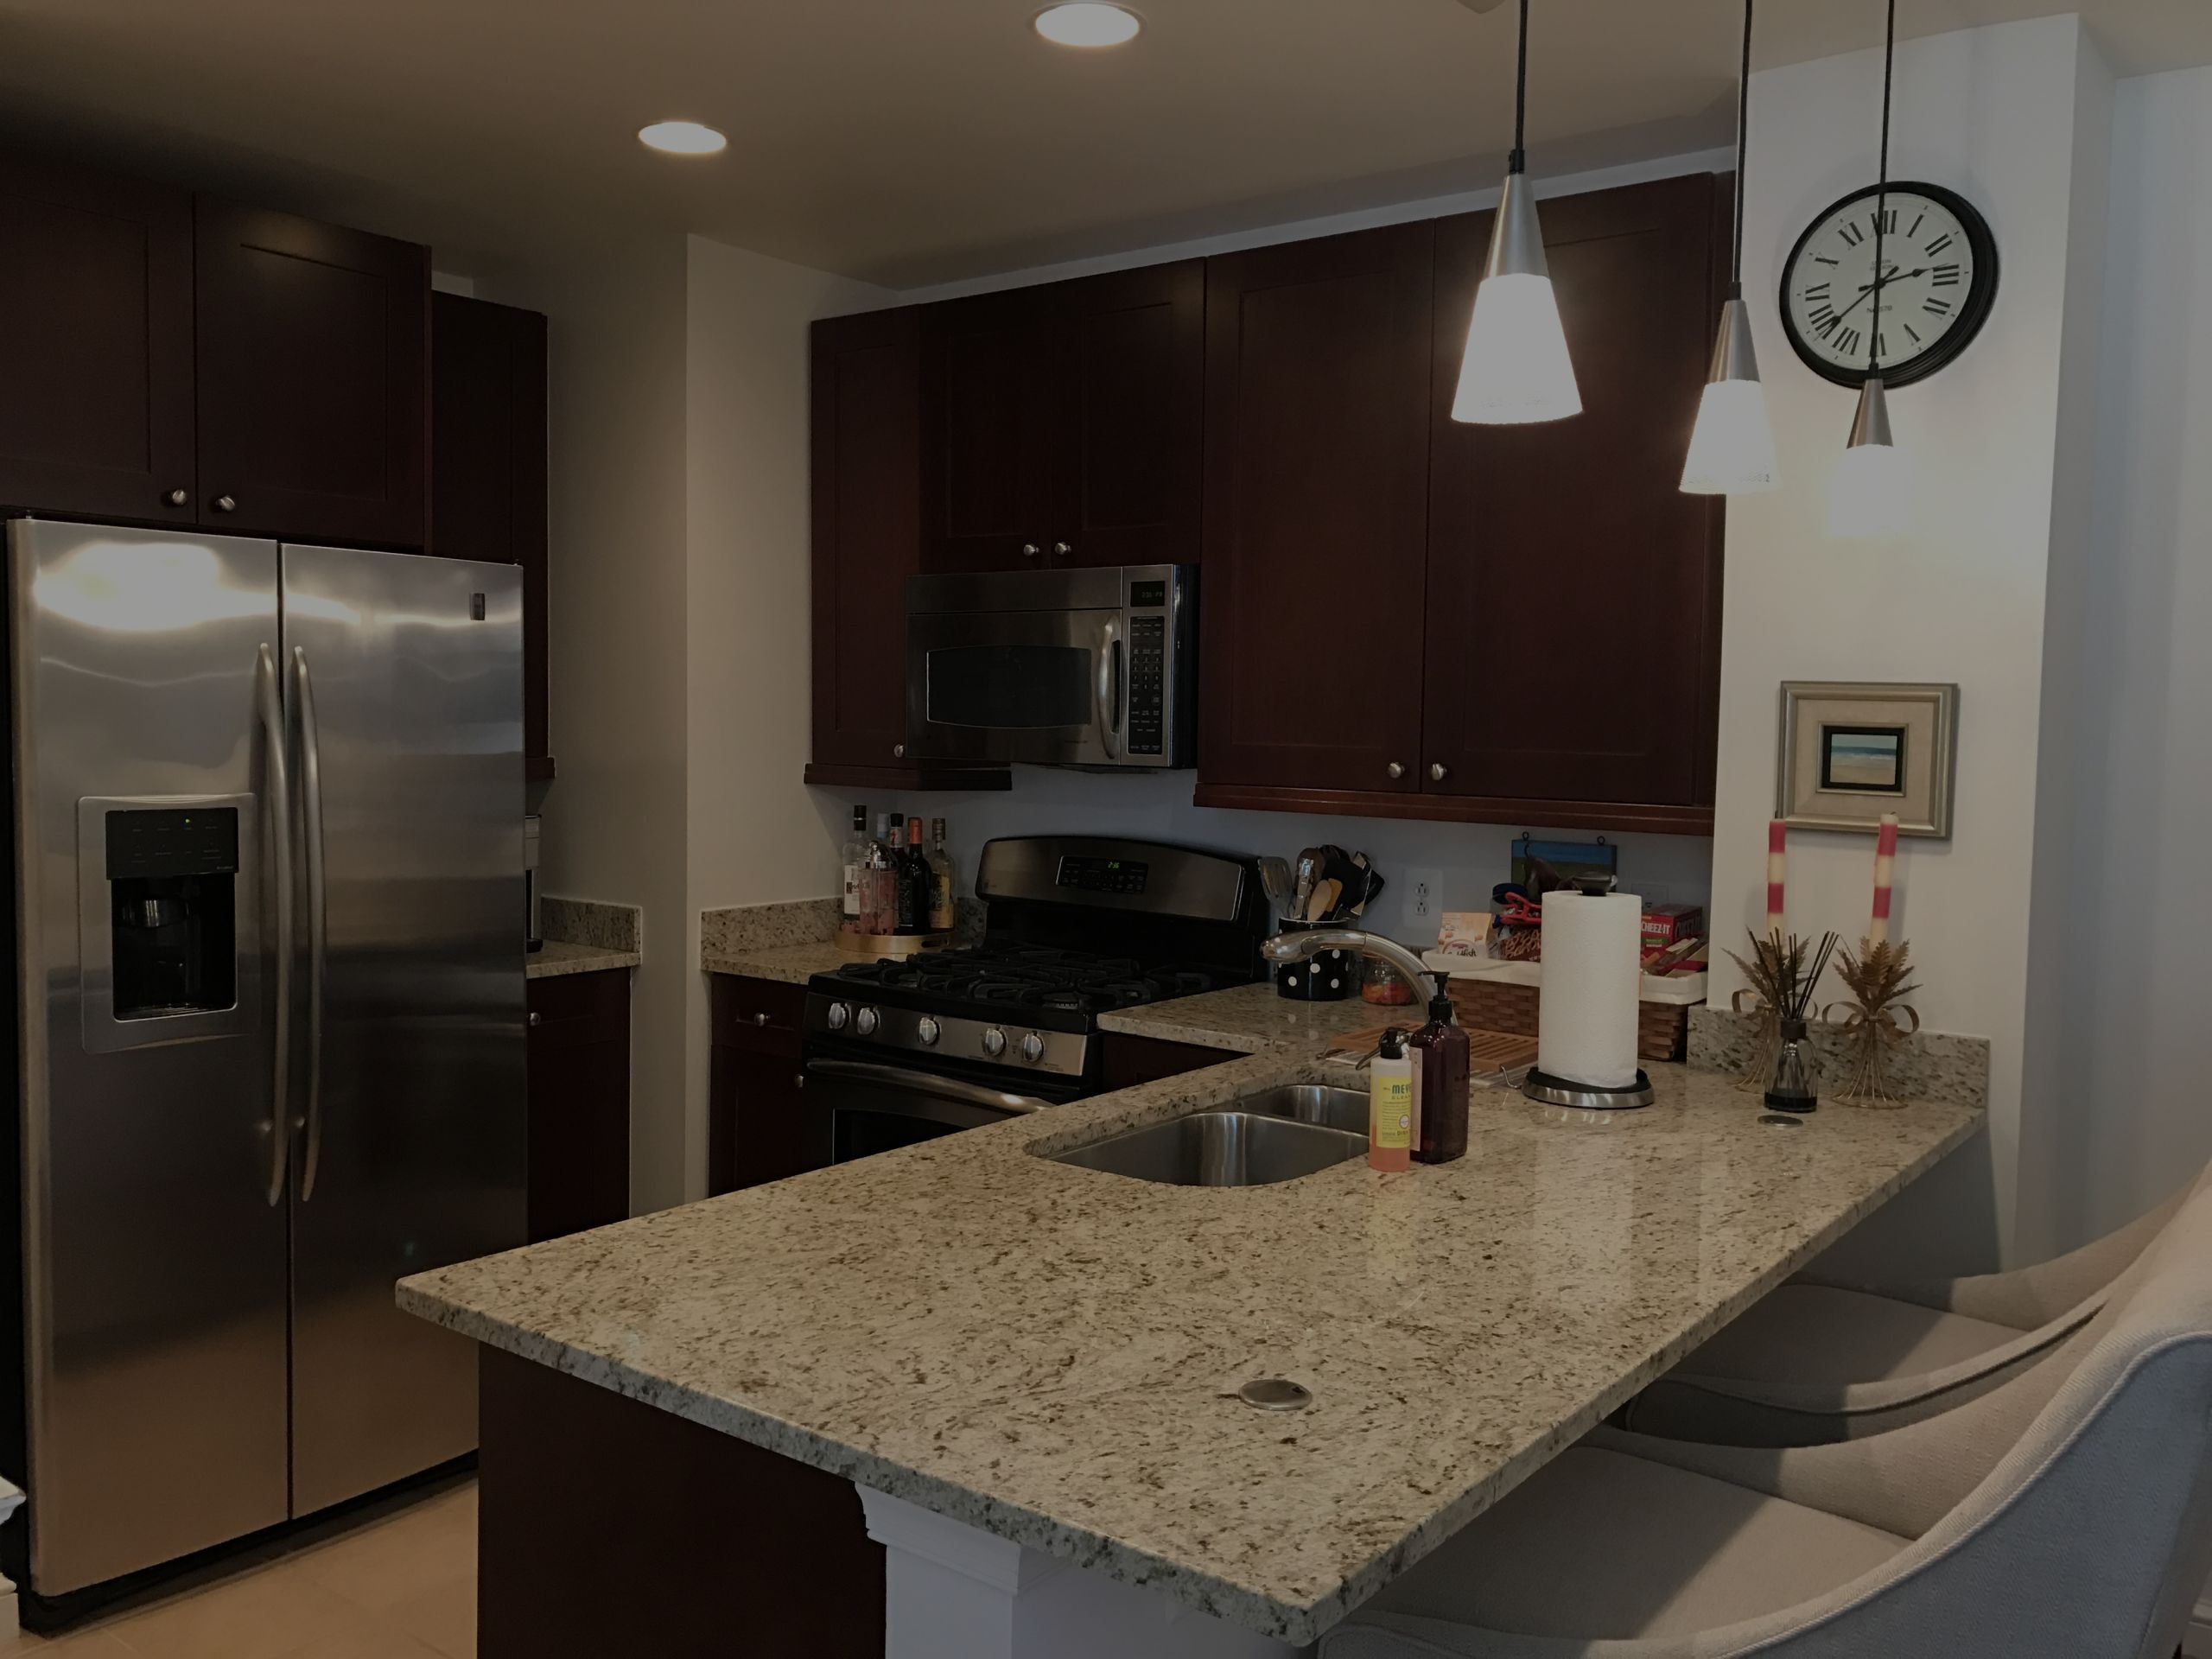 Condo for Rent in the heart of Reston Town Center!!!